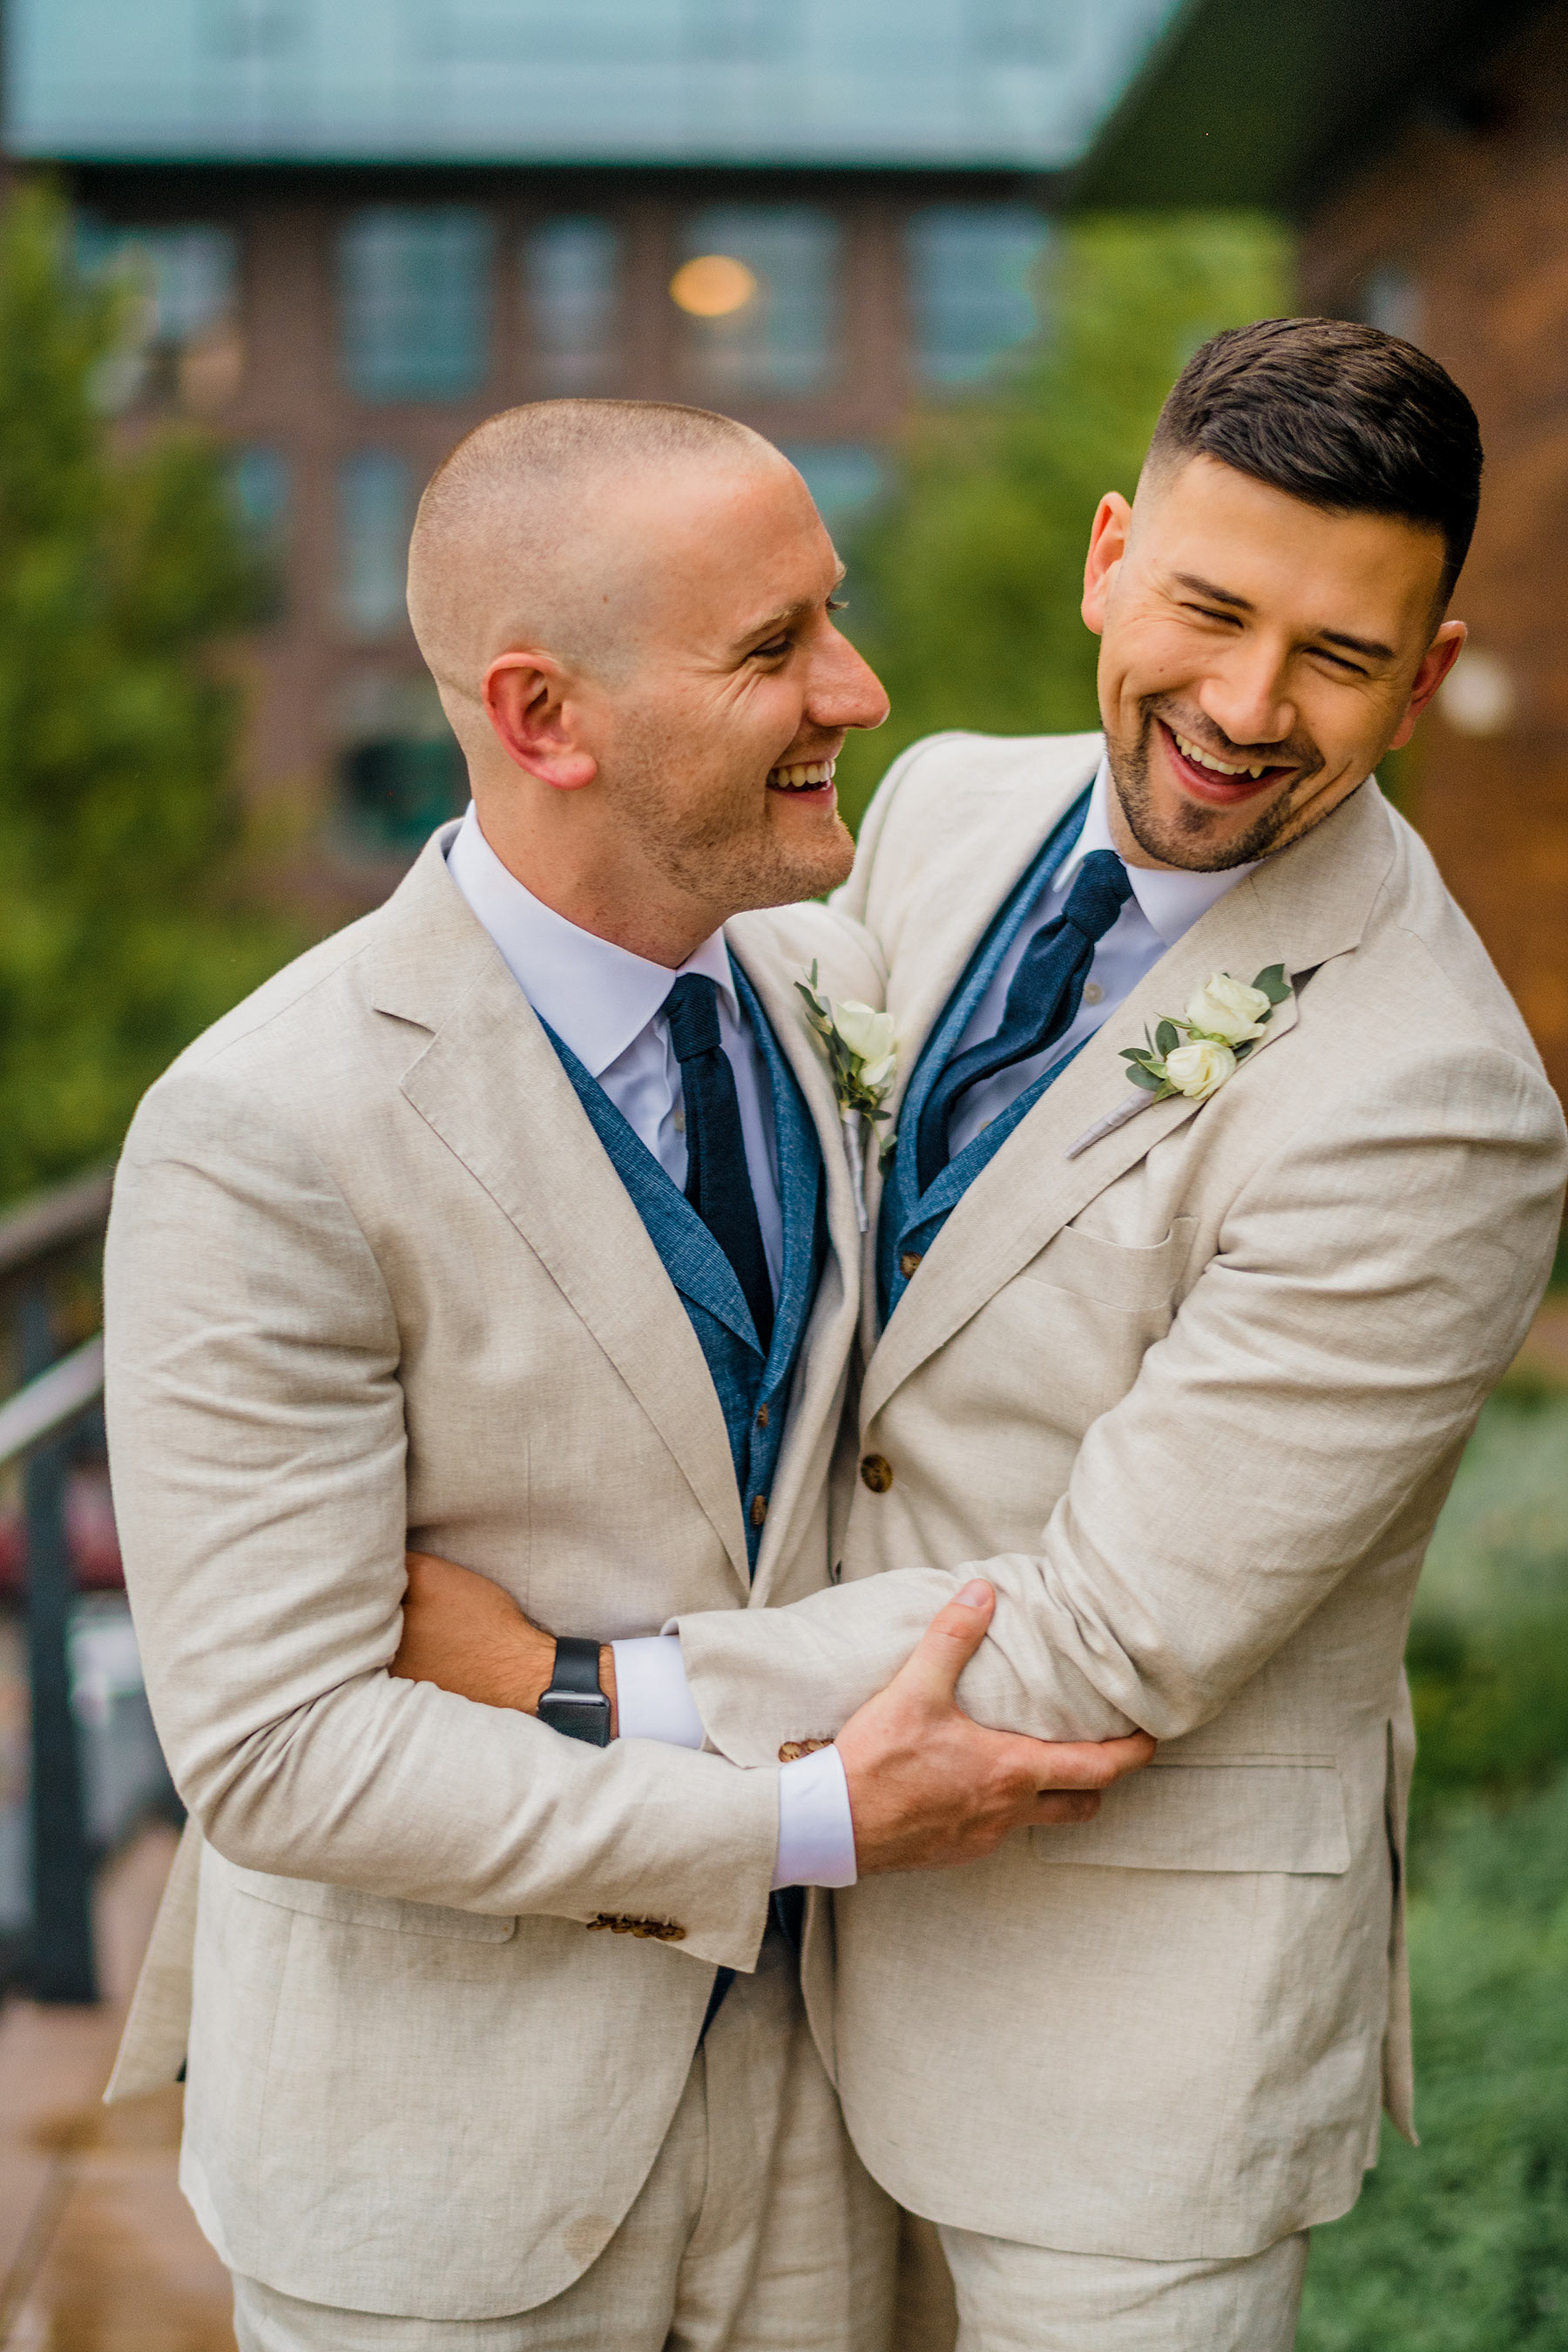 blushing grooms in suit supply suits on wedding day by Washington DC Wedding Photographer Adam Mason